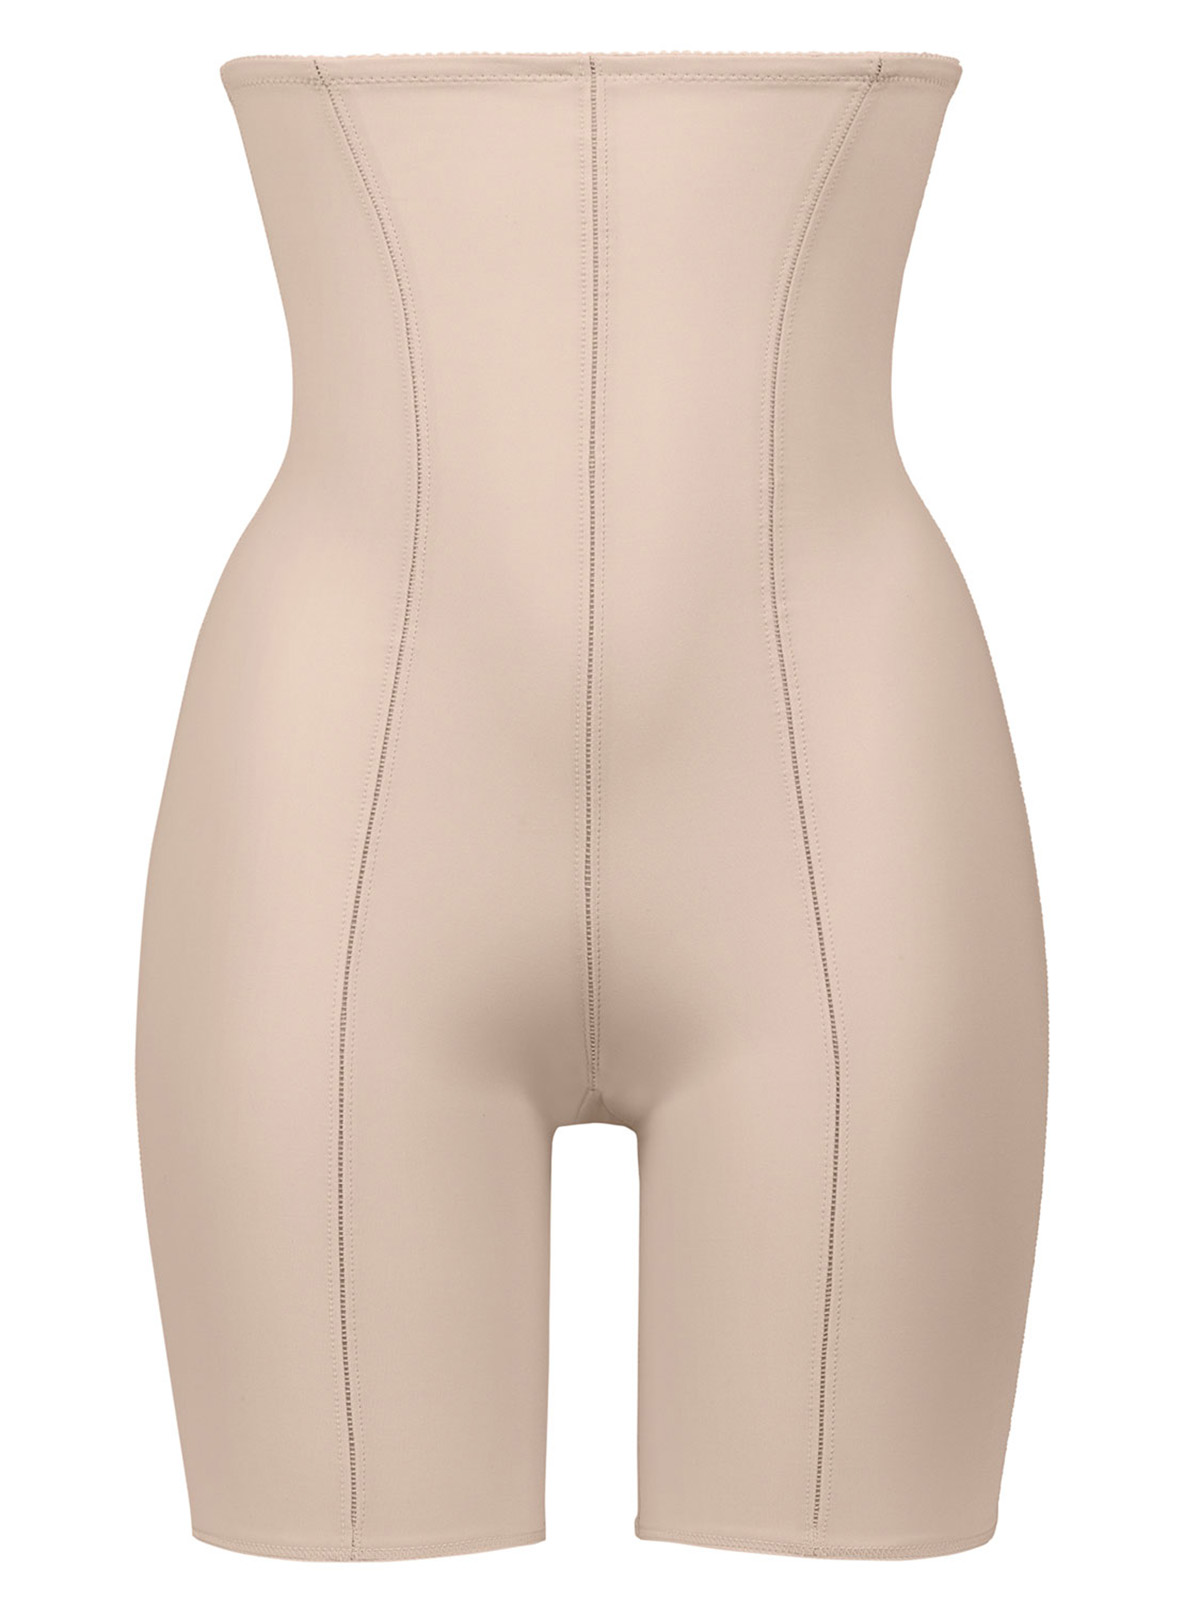 Naturana Long Leg Panty Girdle 0060